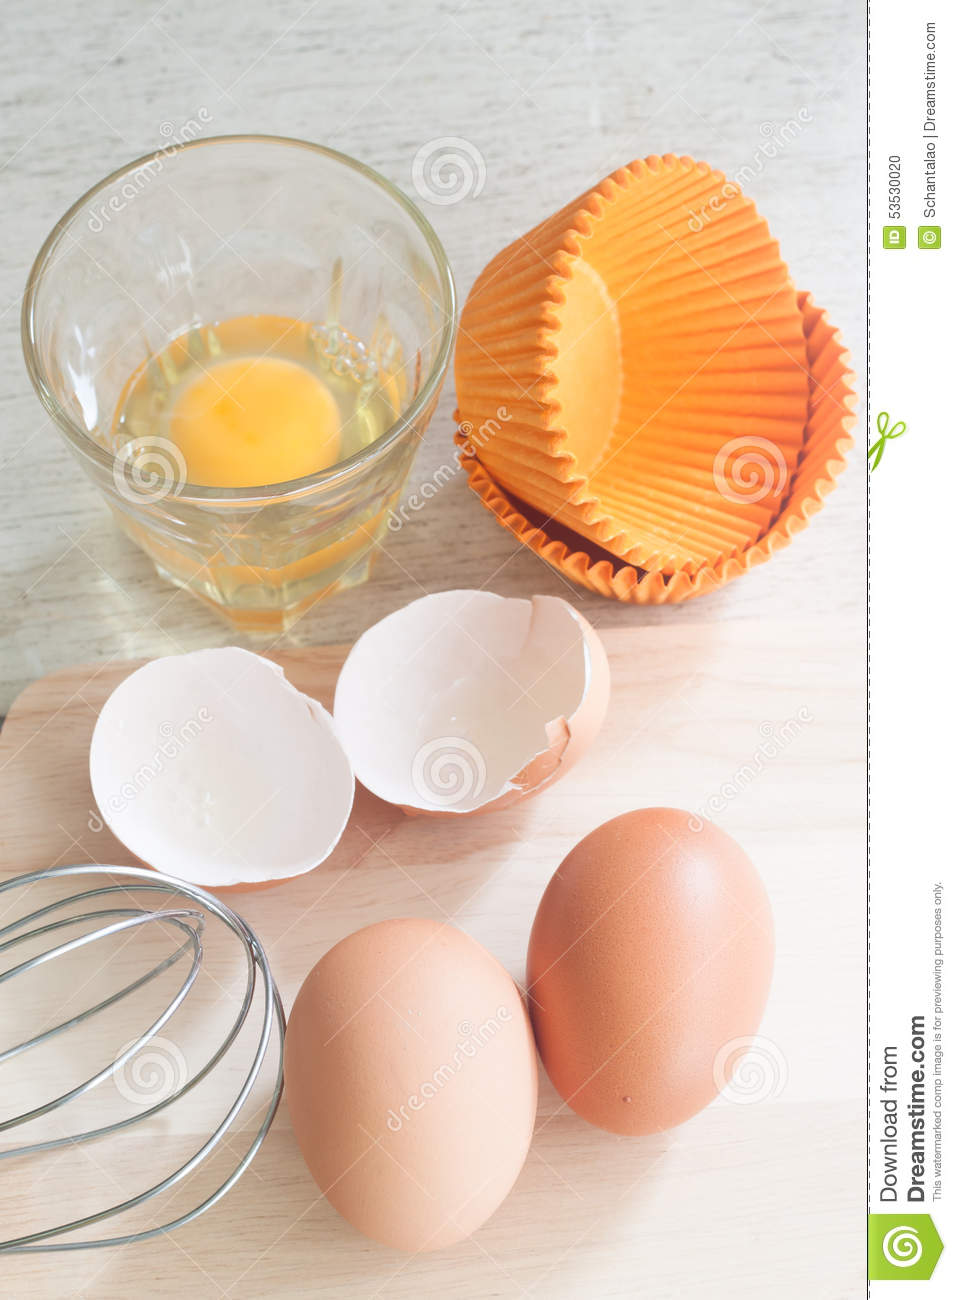 Ingredients and tools to make a cake eggs bakery cups for What are the ingredients to make a cake